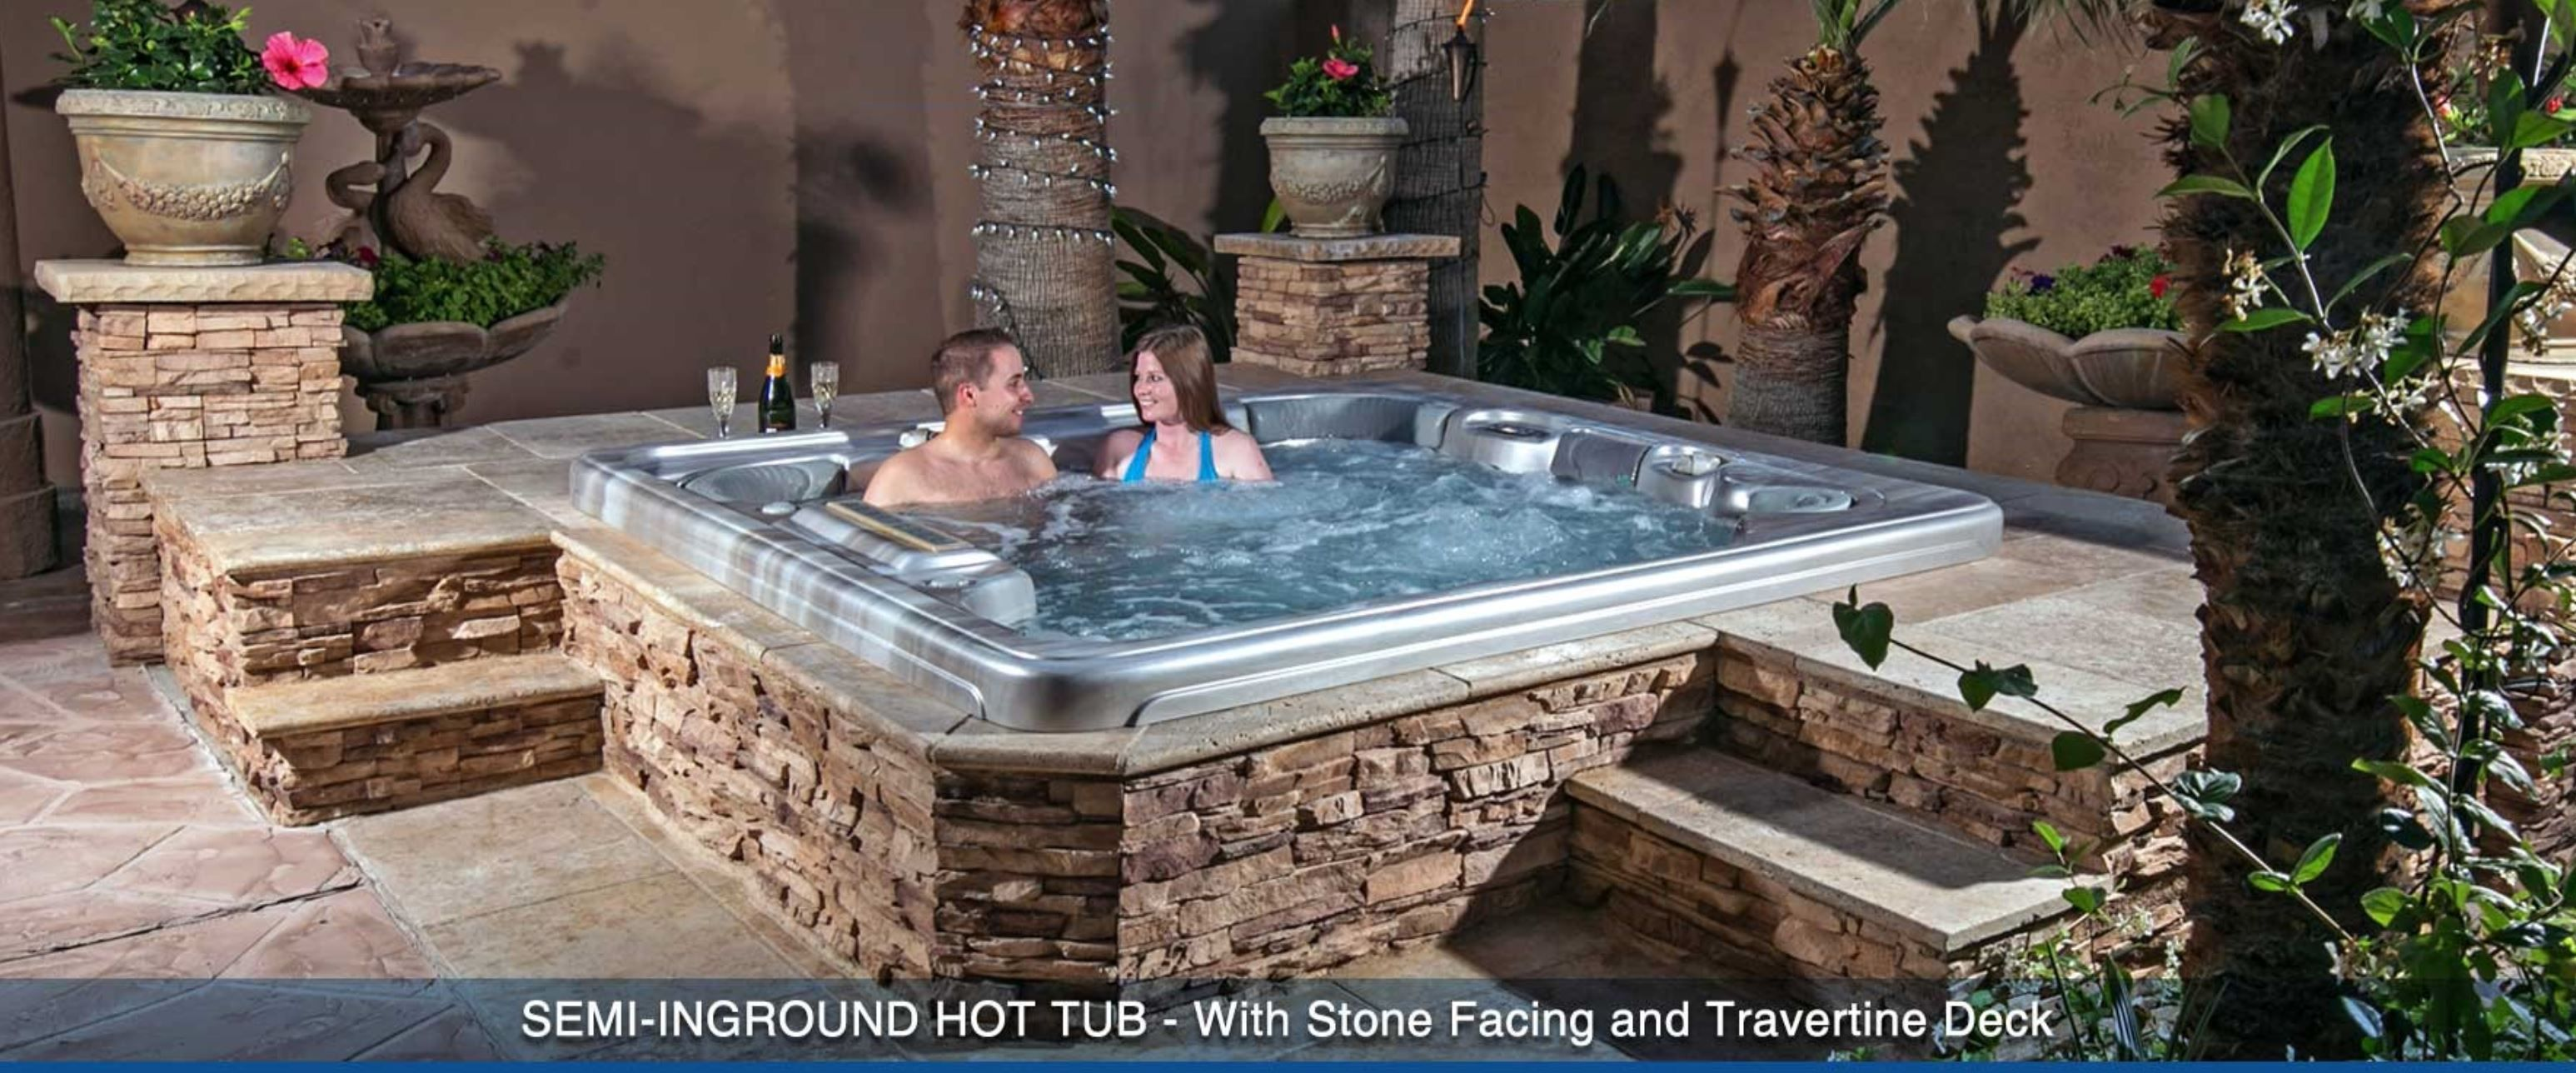 Semi Inground Hot Tubs 30 Minutes Huge Sale Visit Our Showroom Free Cover Steps Chemicals With Pur Inground Hot Tub Hot Tub Outdoor Hot Tub Landscaping